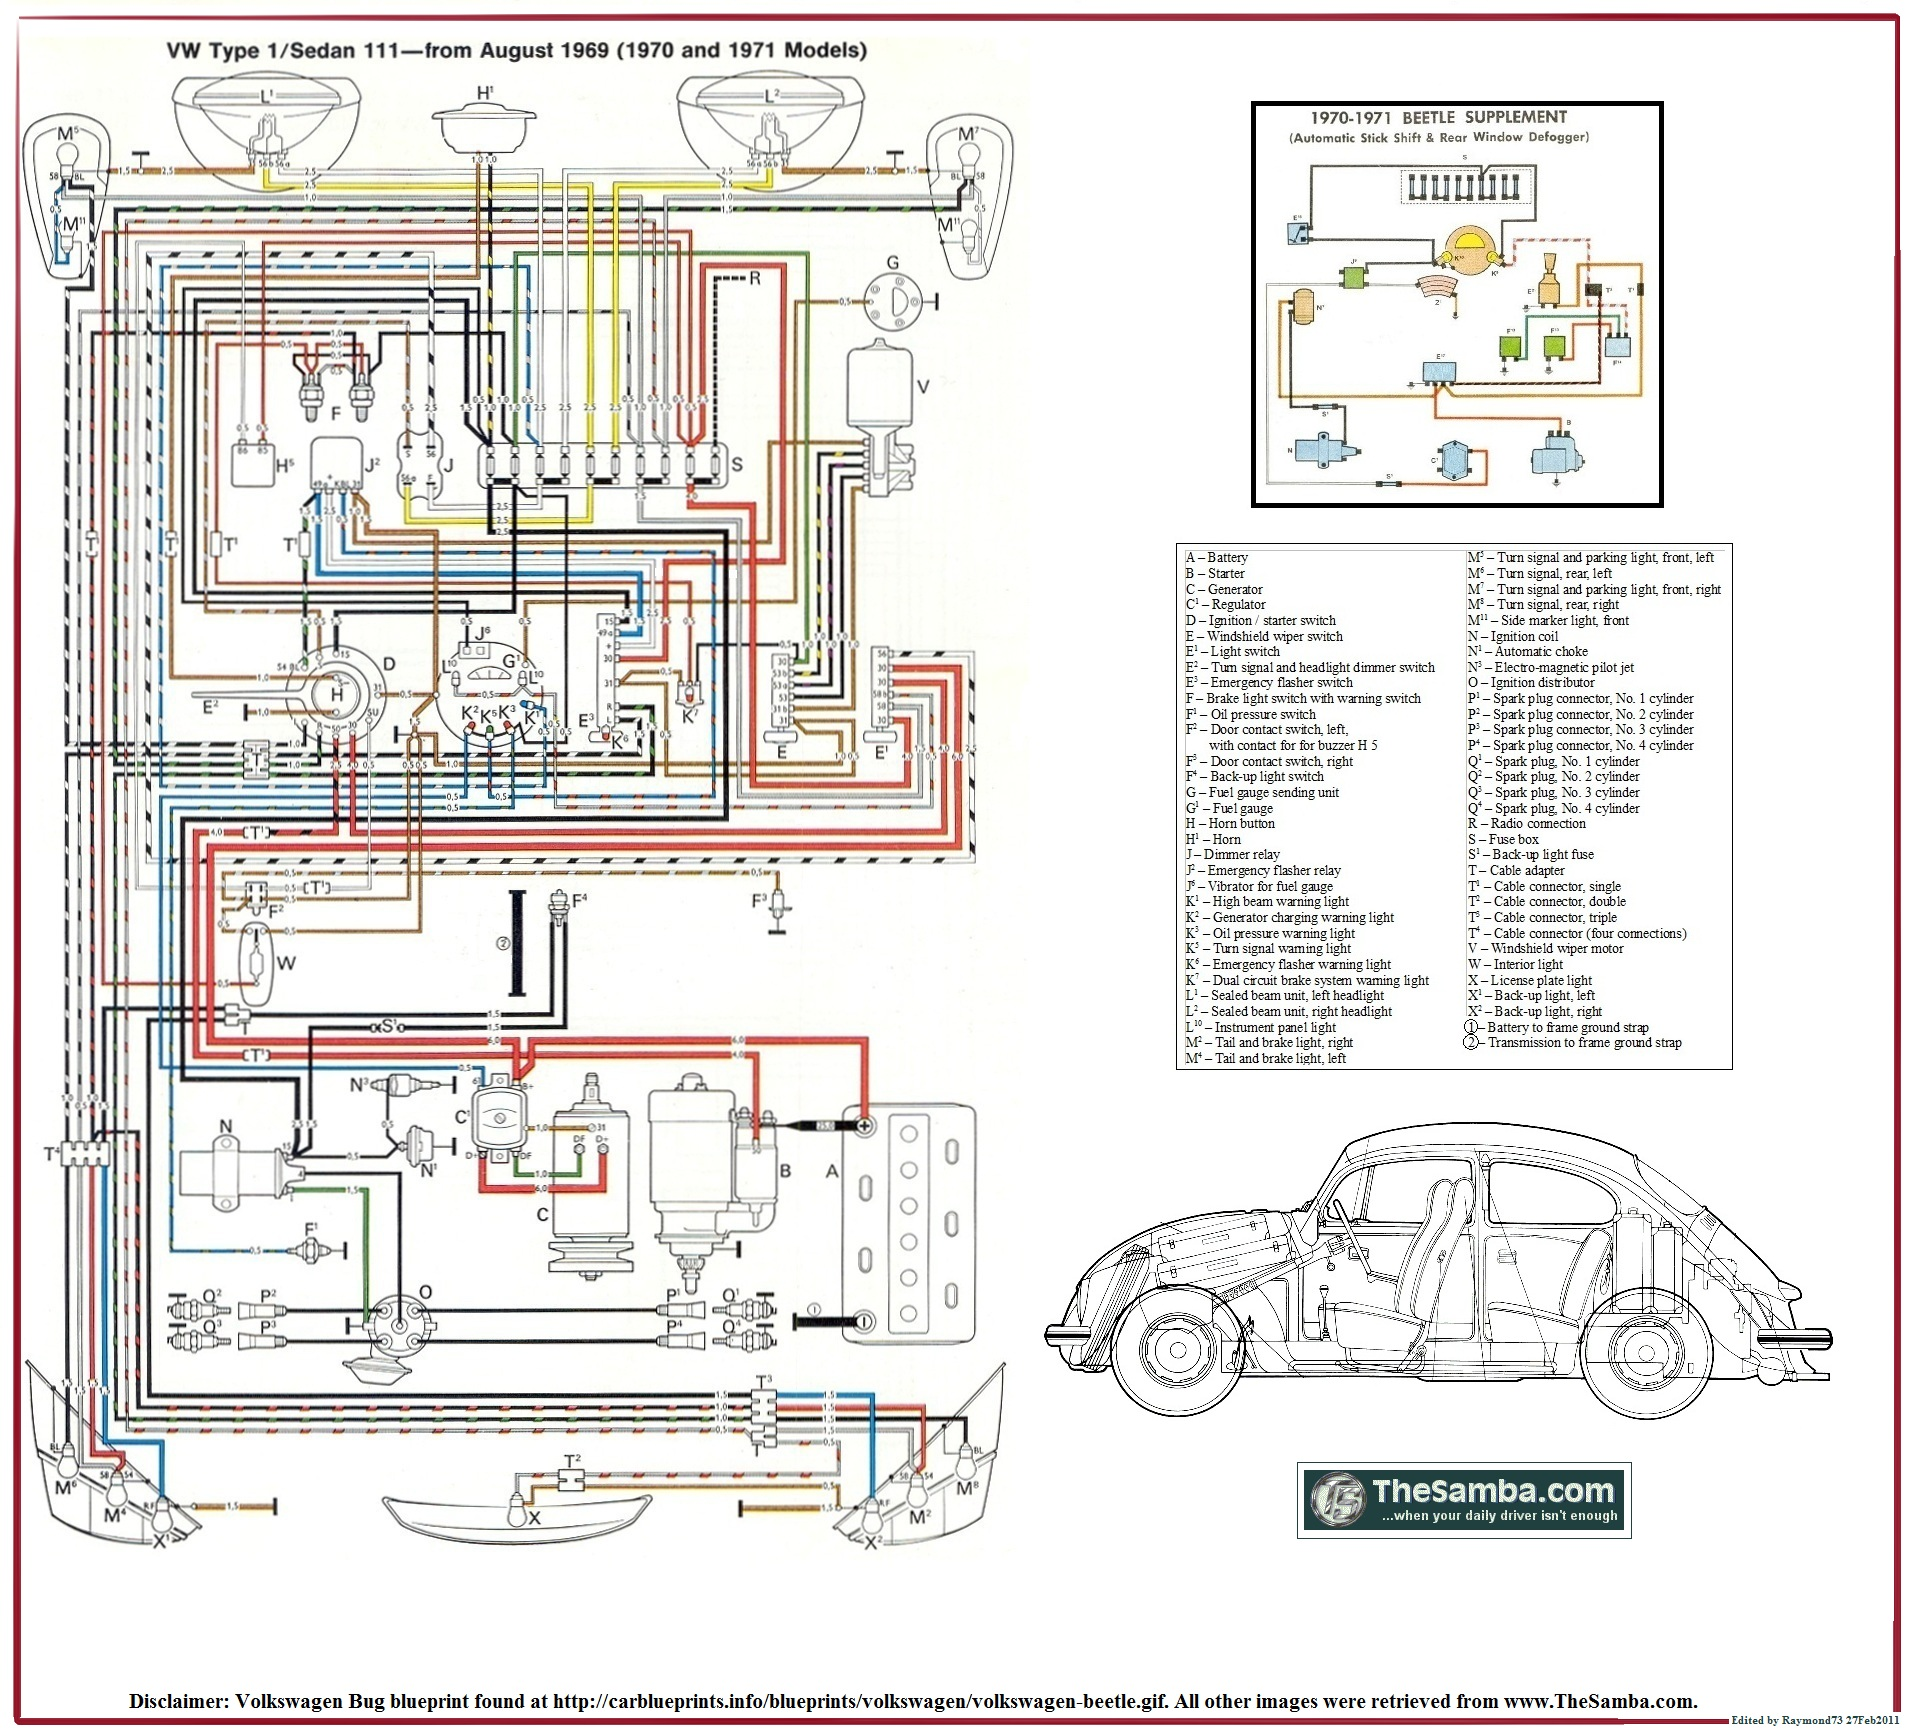 1970_VW_Type_1_Poster 1970 beetle wiring schematic yamaha motorcycle wiring diagrams DIY Lingerie Harness at virtualis.co